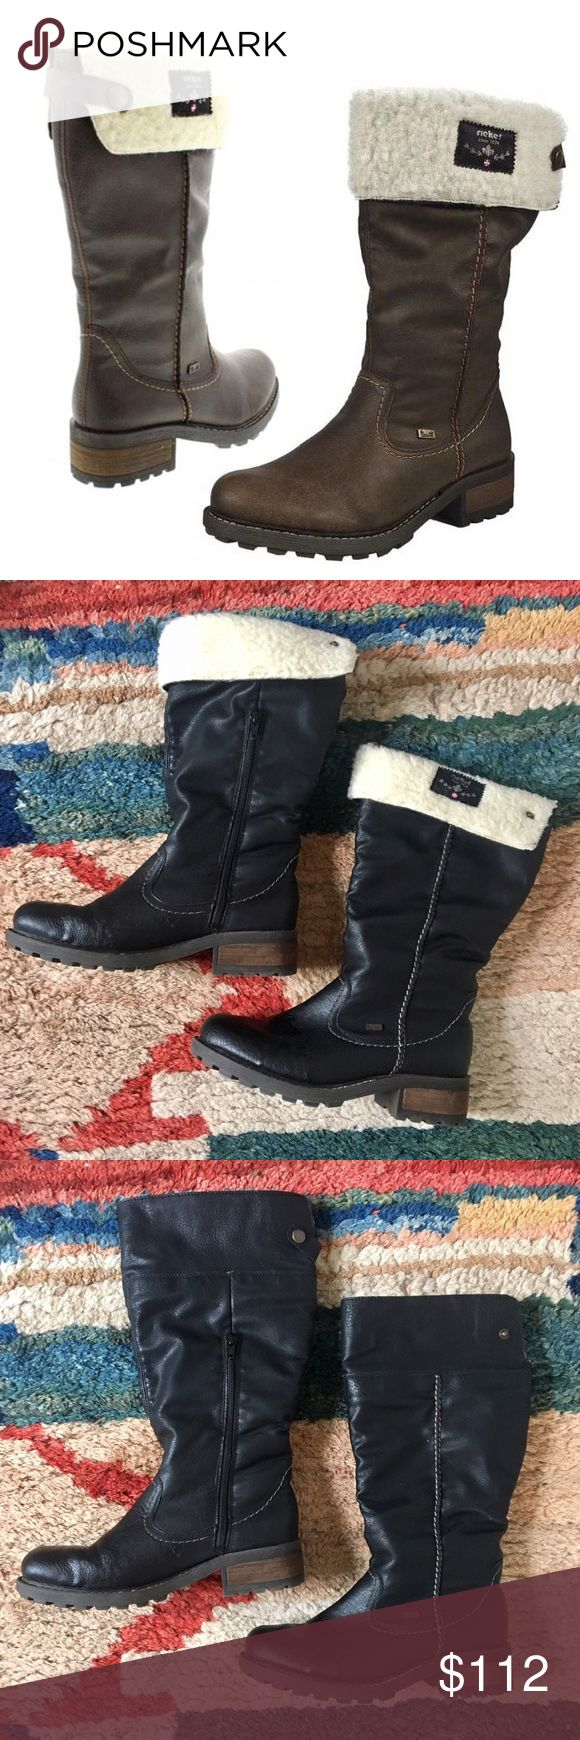 Rieker Leather Boots Ladies winter boots by Rieker - waterproof, black leather, lambswool lining that can flip up or down. Very comfortable and durable - only worn once !! FITS LIKE A US 8 Rieker Shoes Winter & Rain Boots